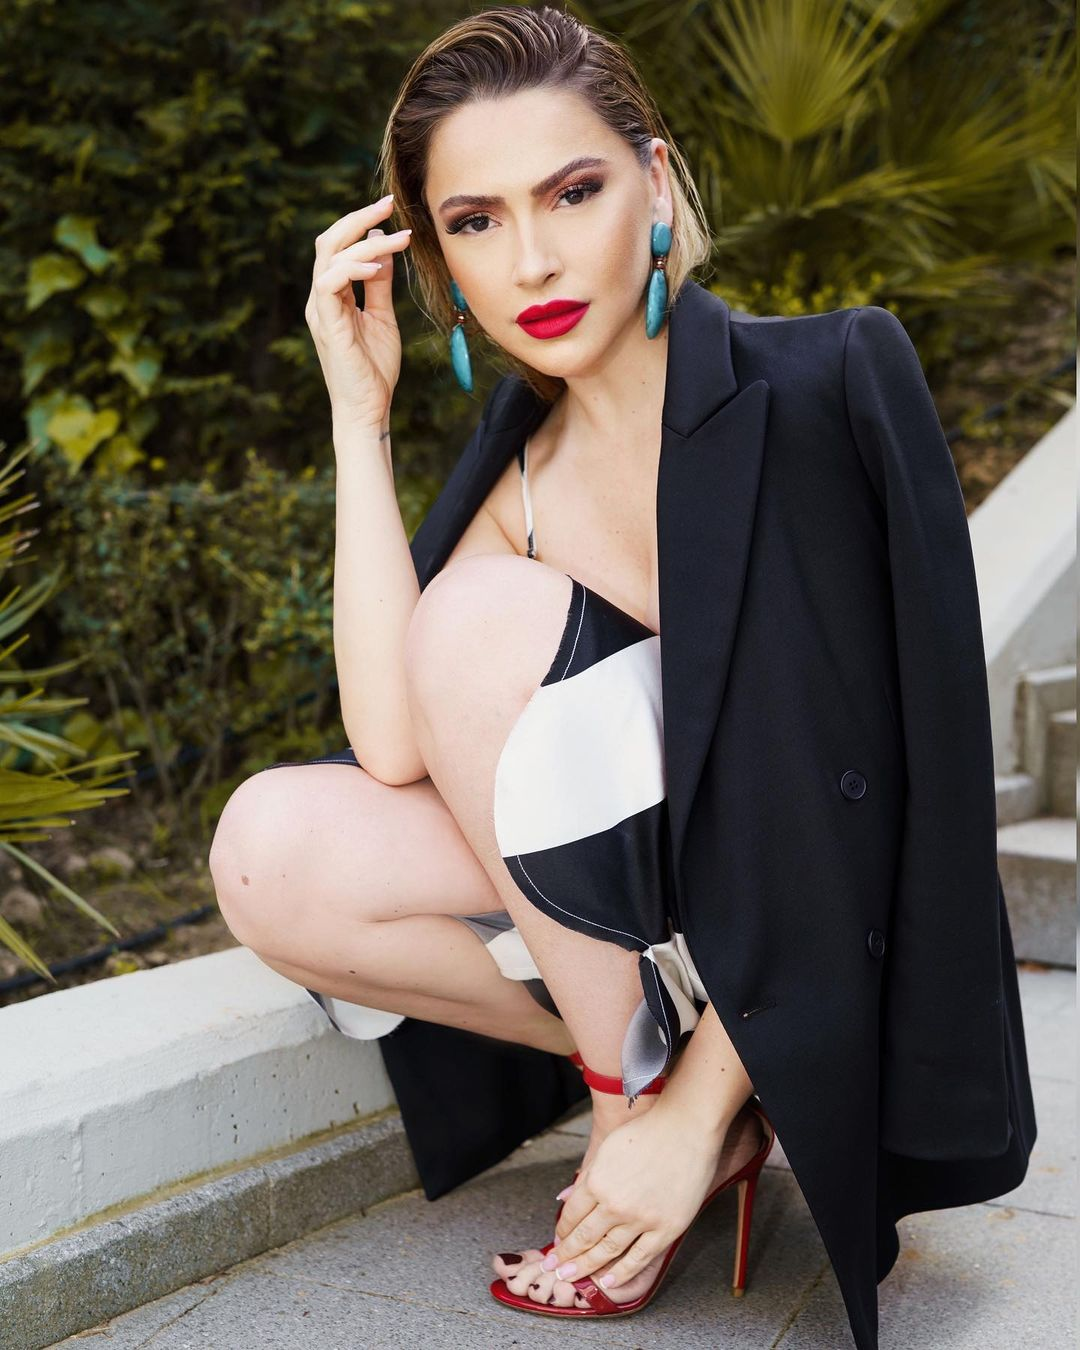 Singer and Model Shown as One of the Sexiest Women in Hadise Country 8